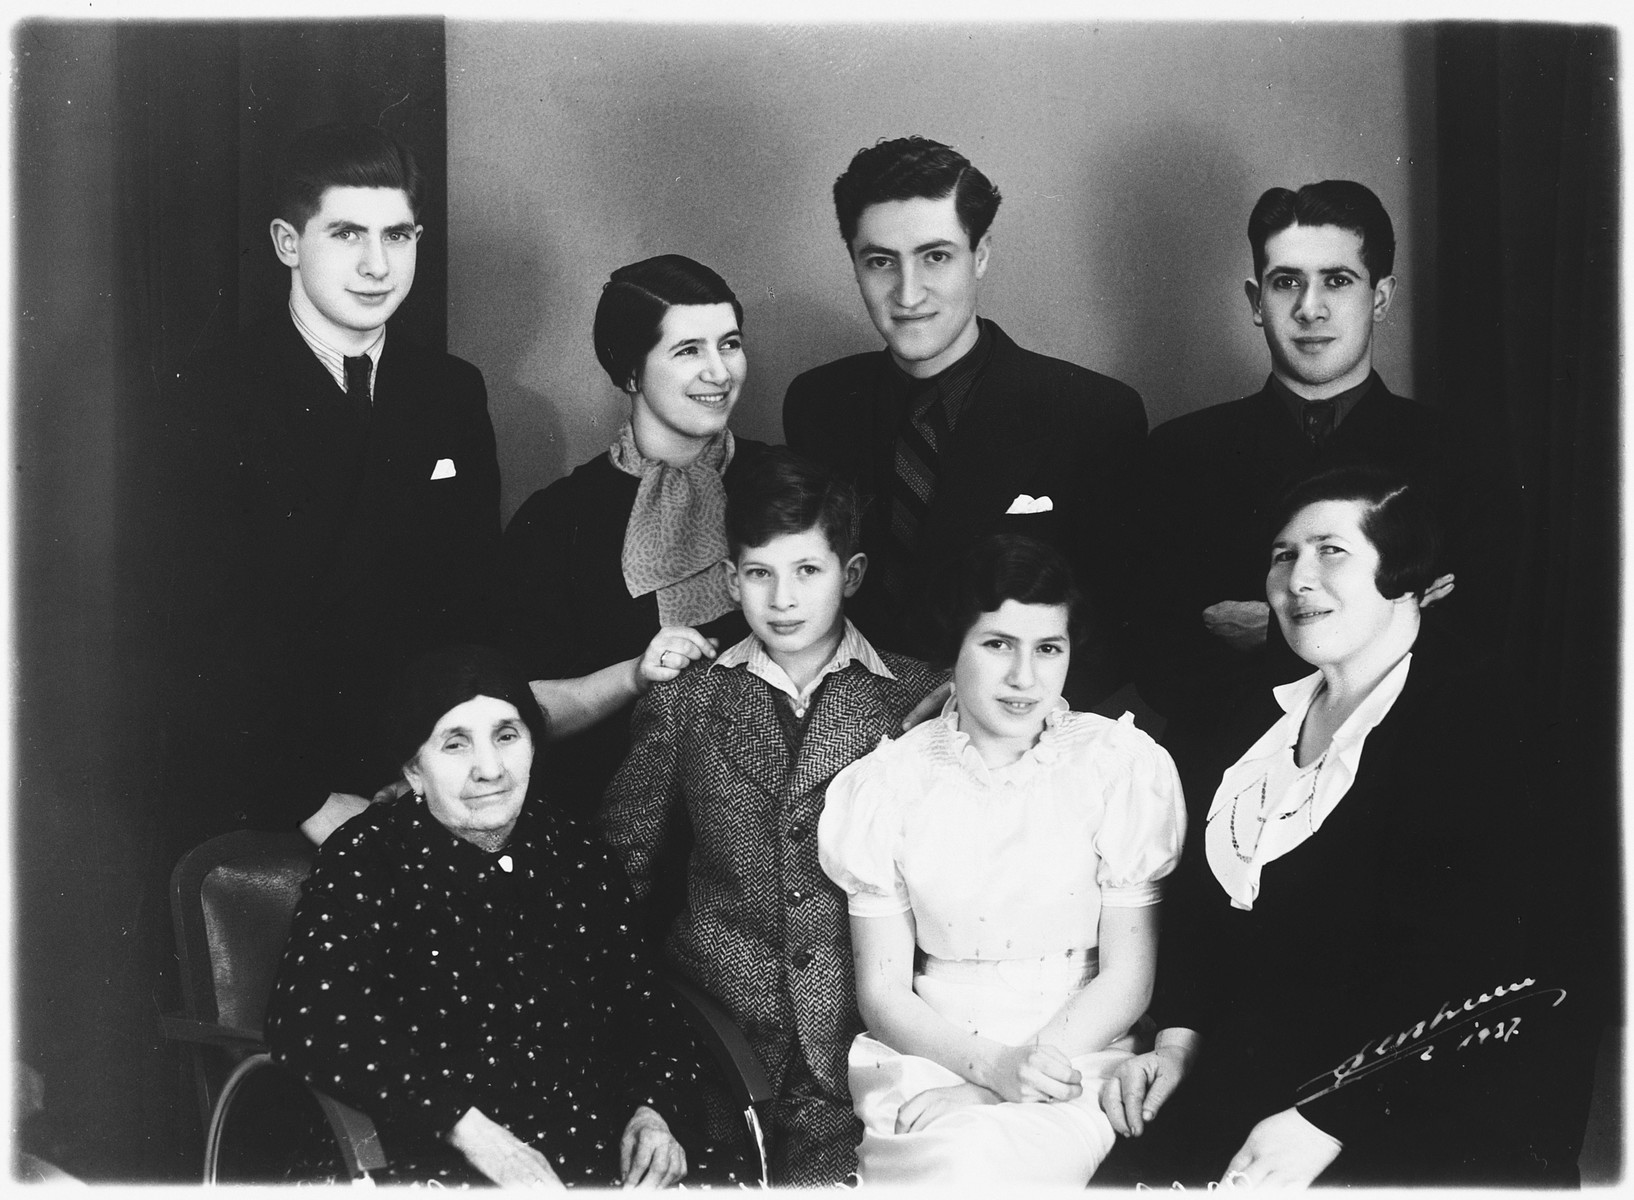 Studio portrait of a Jewish family in Copenhagen taken on their daughter's confirmation.  Pictured in the back row from left to right are: Israel Diament, Kaja Diament, Josef Gendelmann, and Bernhard Diament.  In the front t row from left to right are Chane, Martin, Esther (the confirmand), and Deborah Diament.